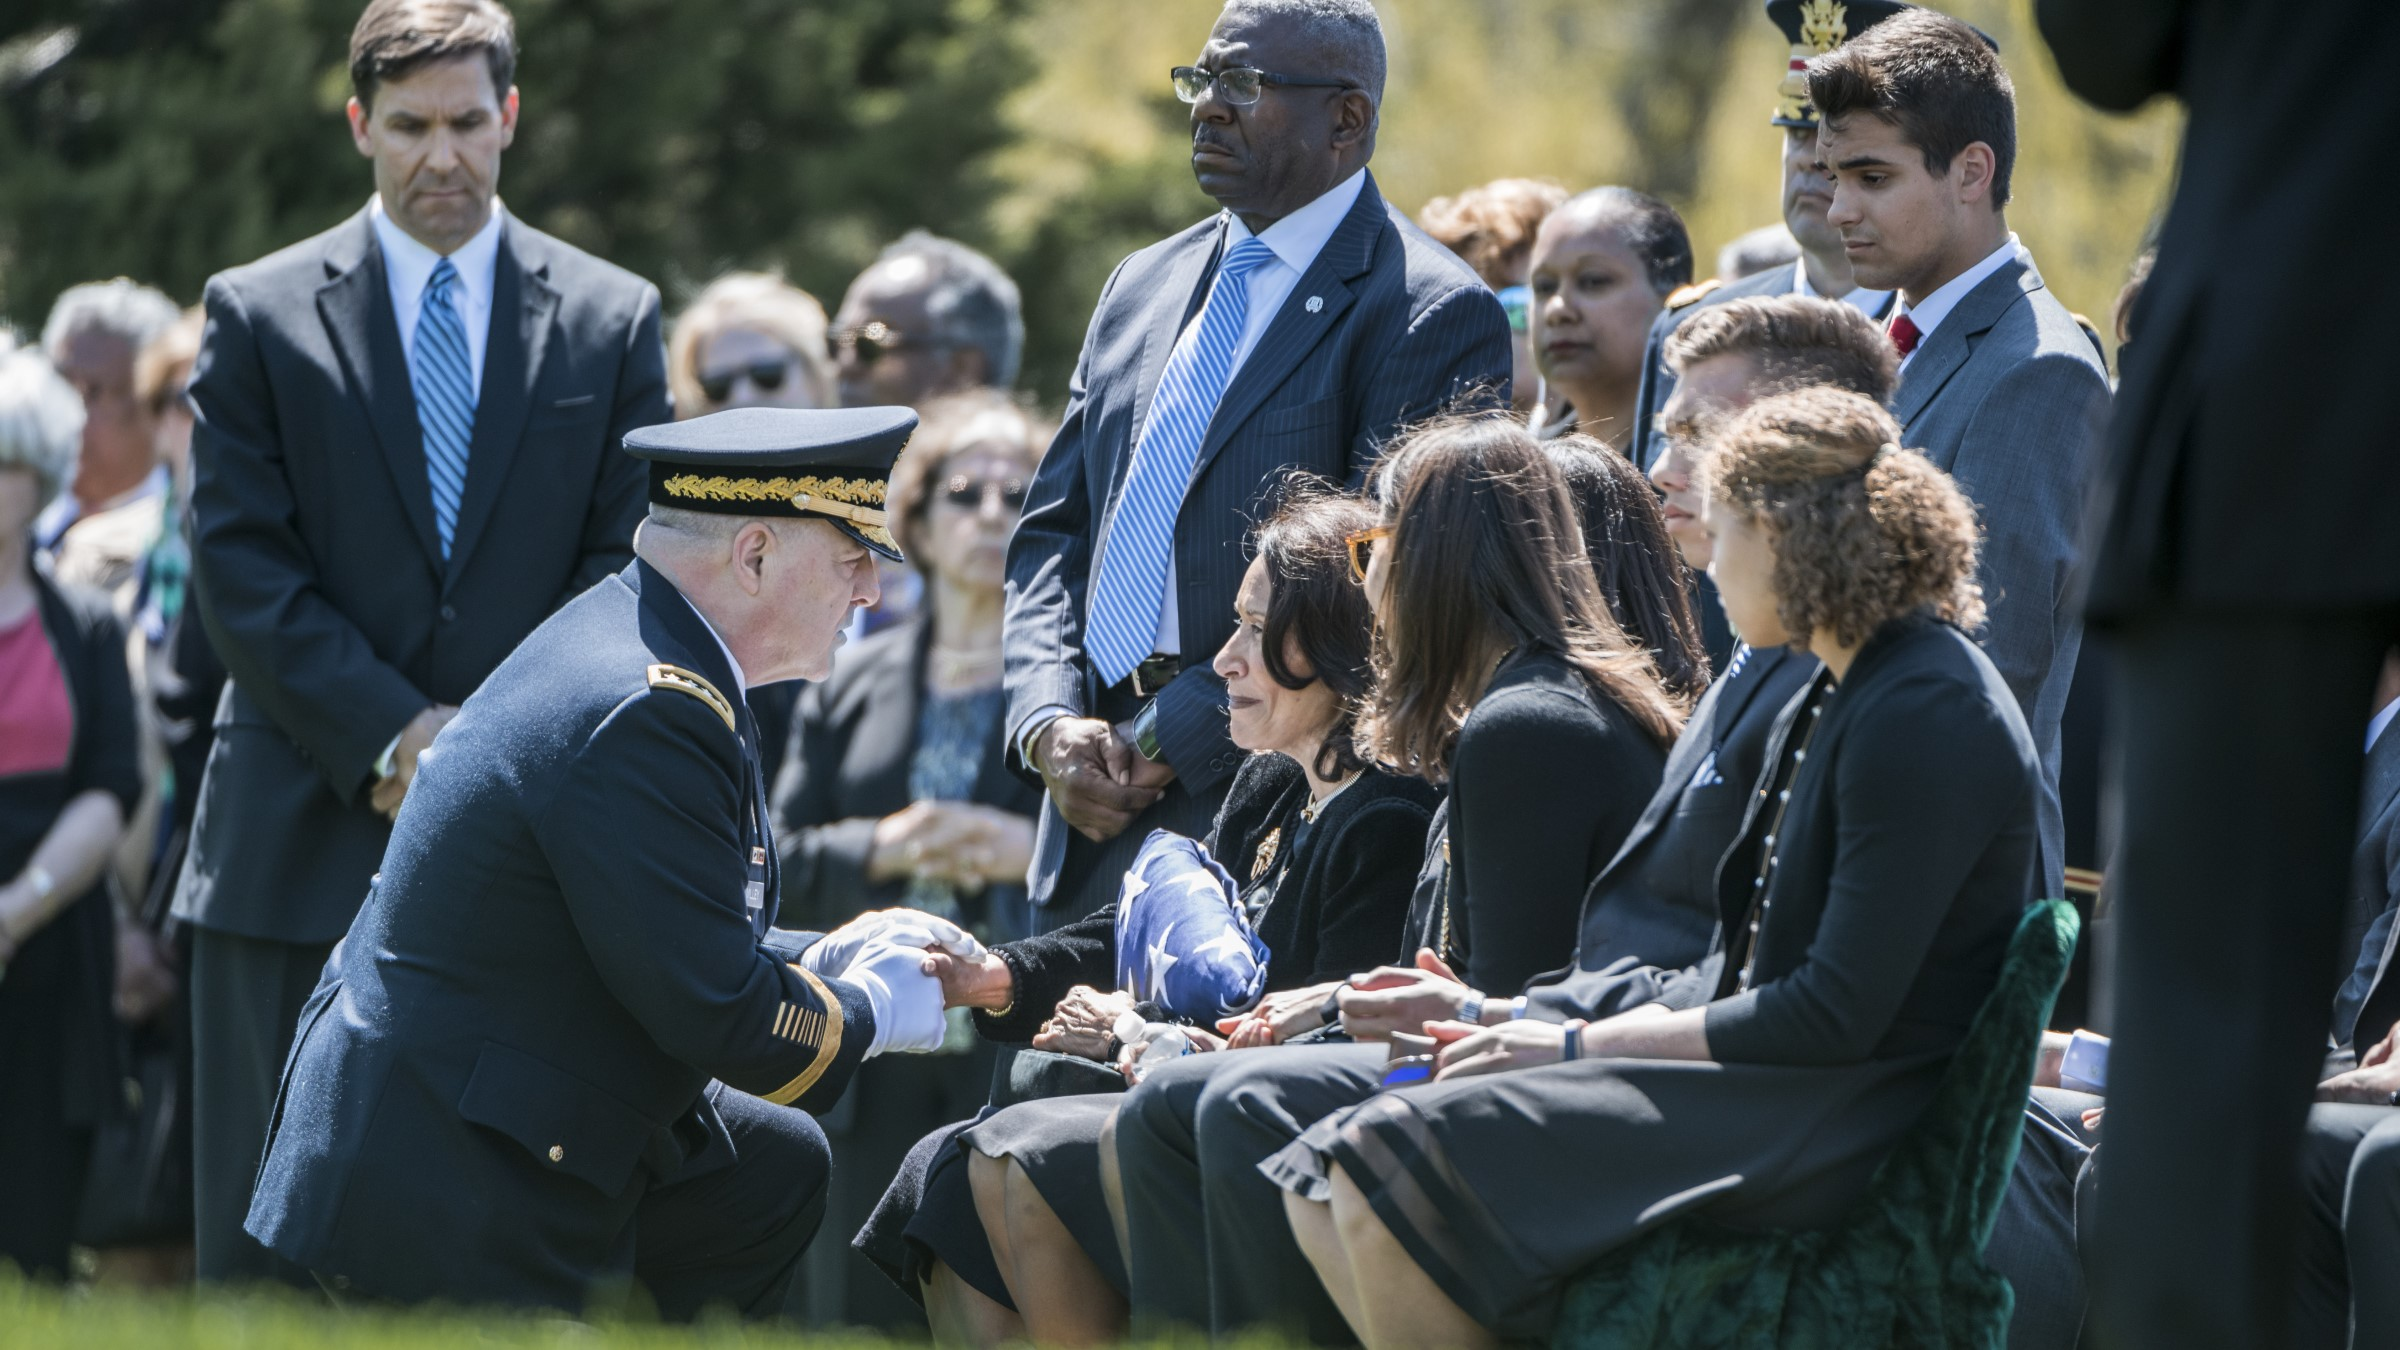 Army general gives burial flag to surviving spouse during her husband's funeral.